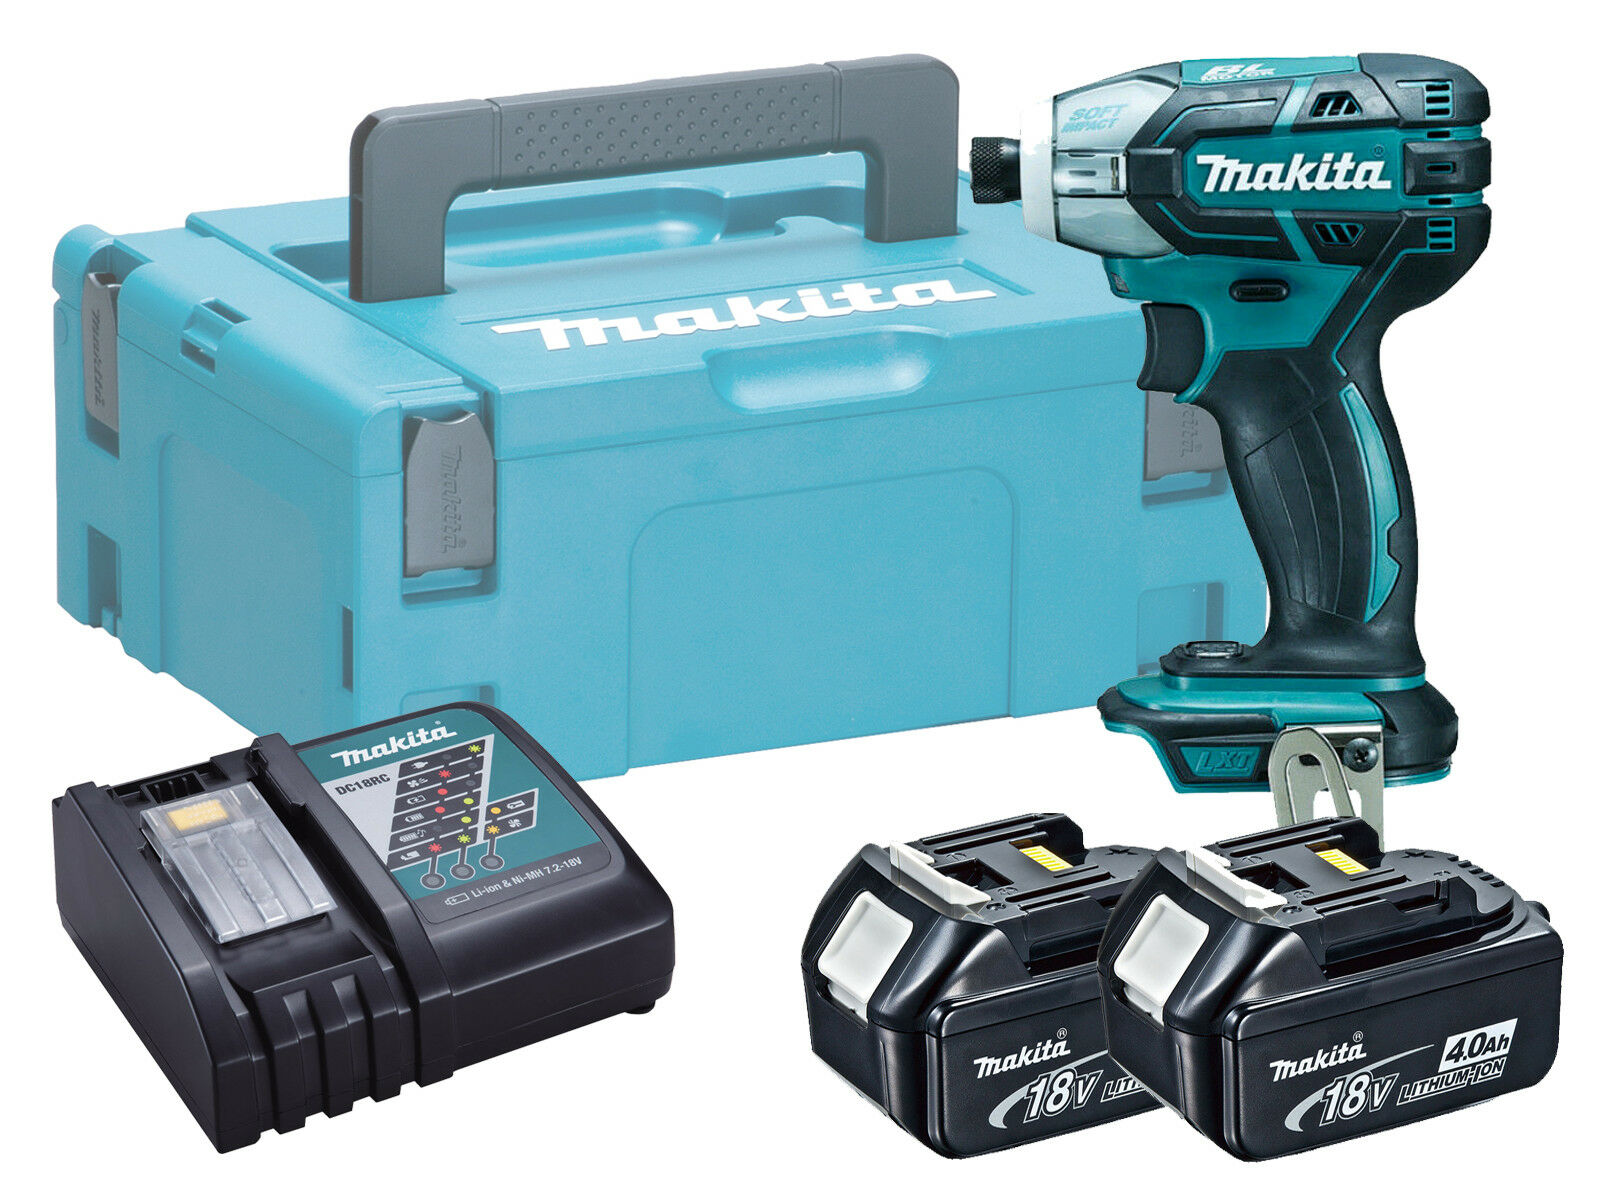 Makita DTS141 18V Brushless Cordless Oil Pulse Driver - 4.0ah Kit